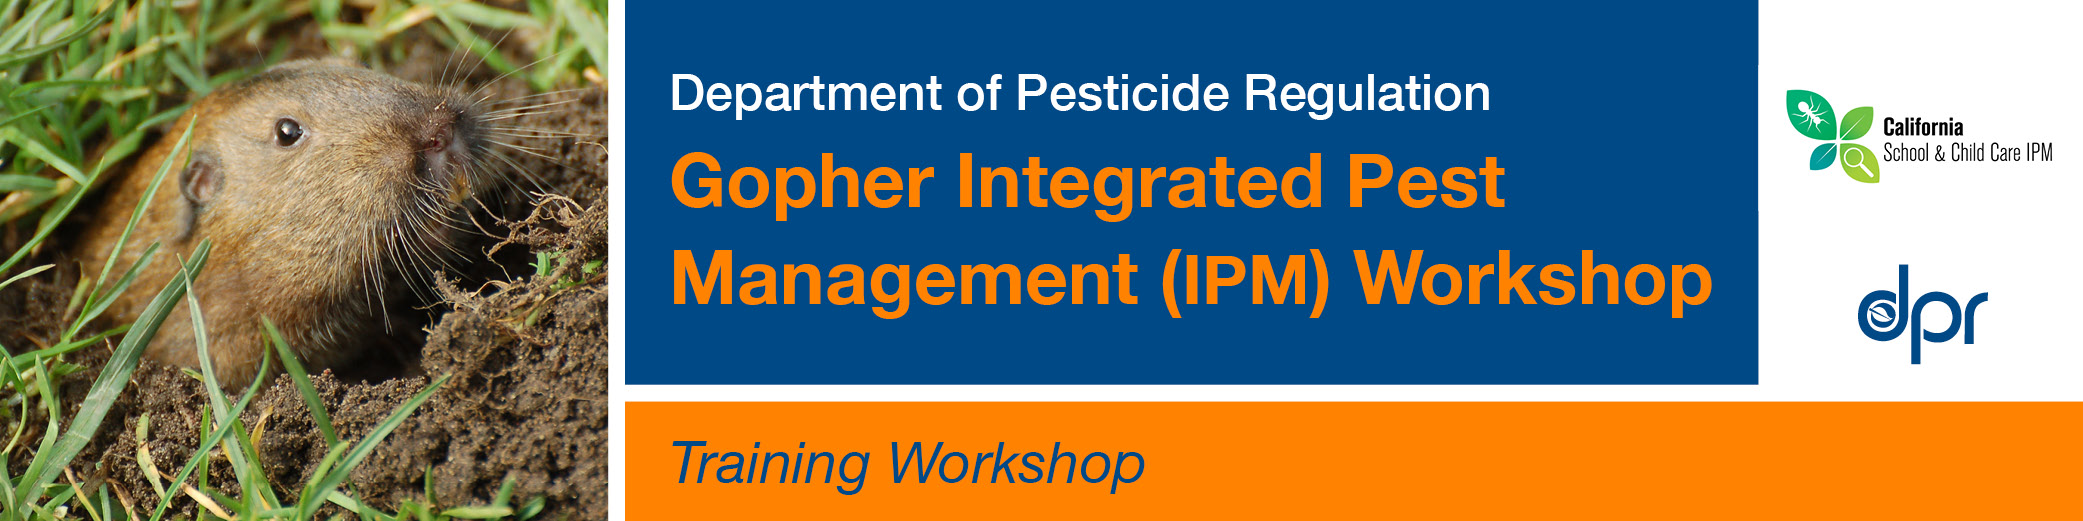 DPR Gopher IPM Workshop